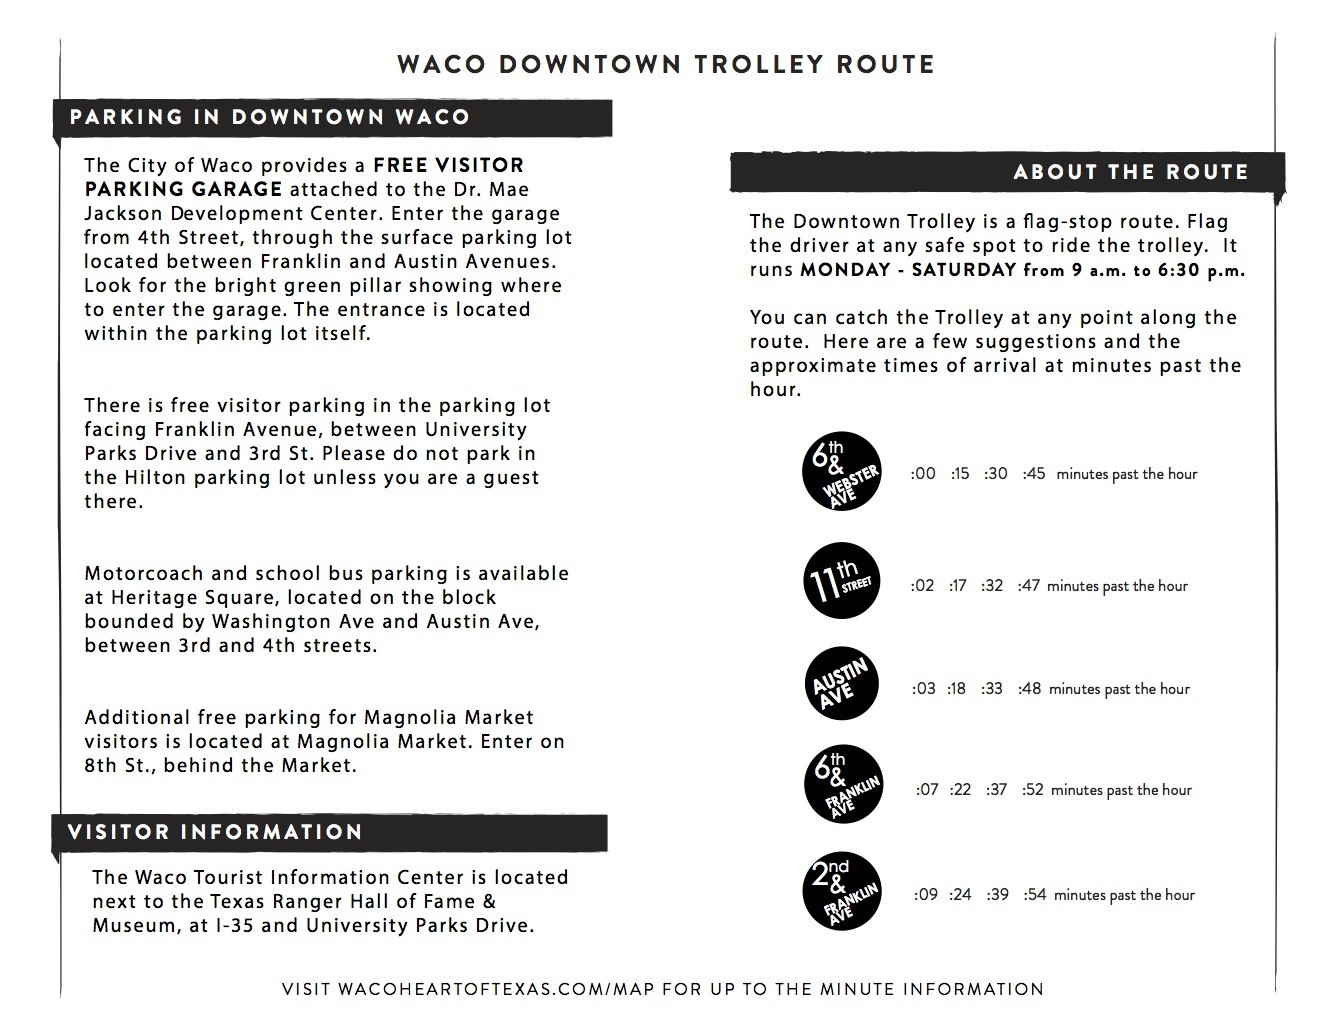 Click to View Silo District Downtown Trolley Route Parking and visitor information